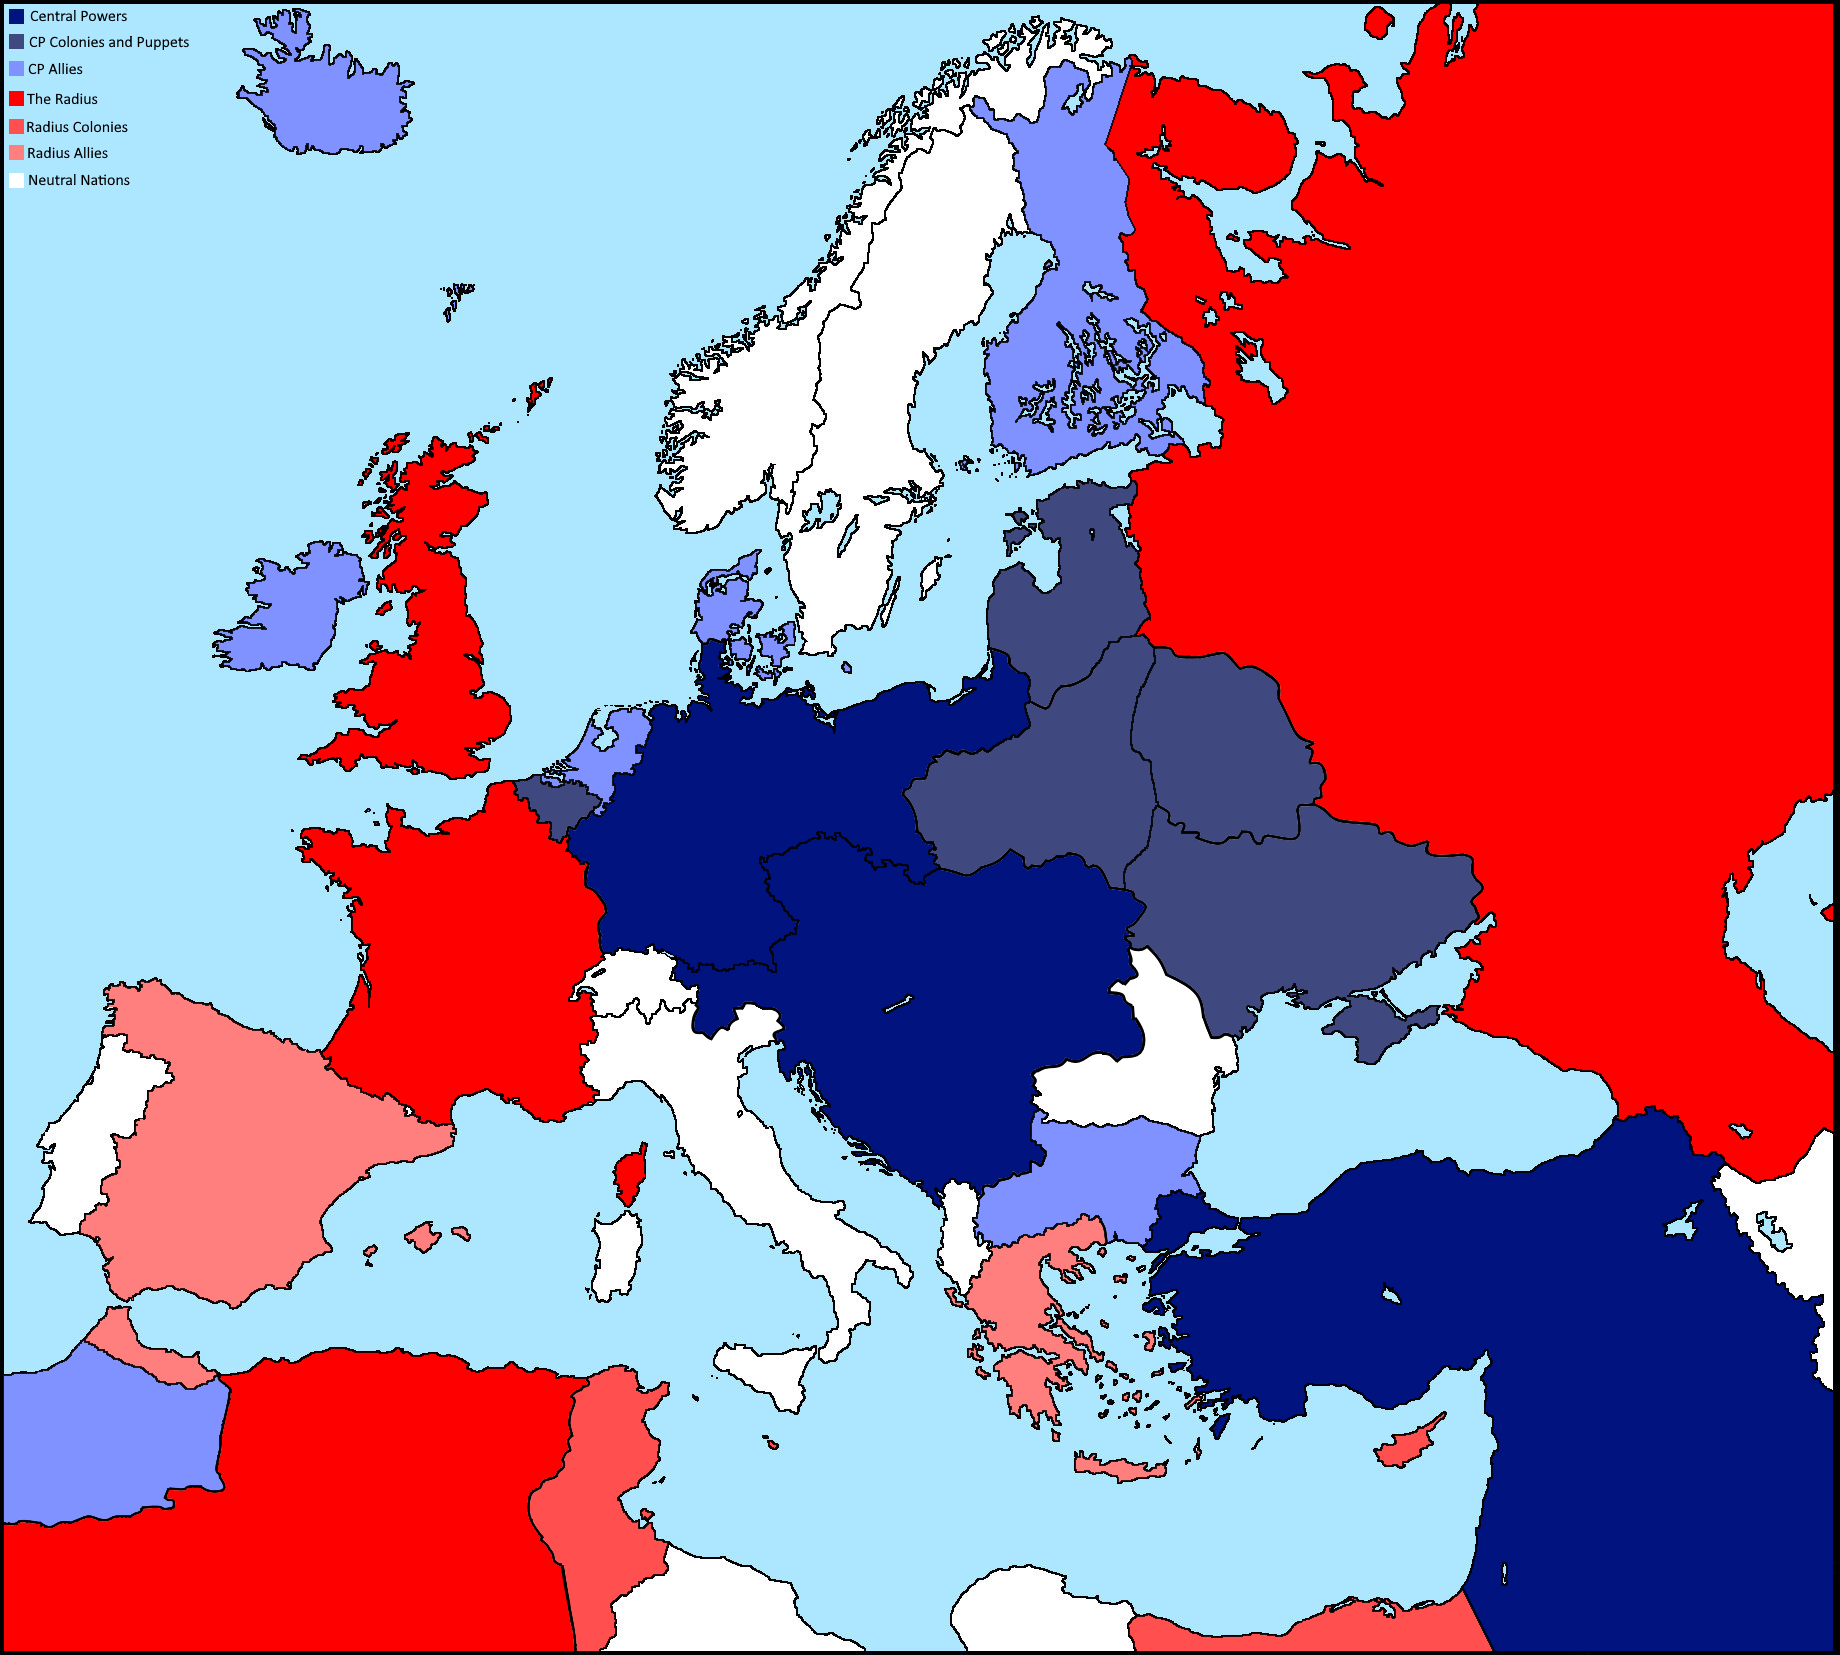 Europe_1941_Alliances.png